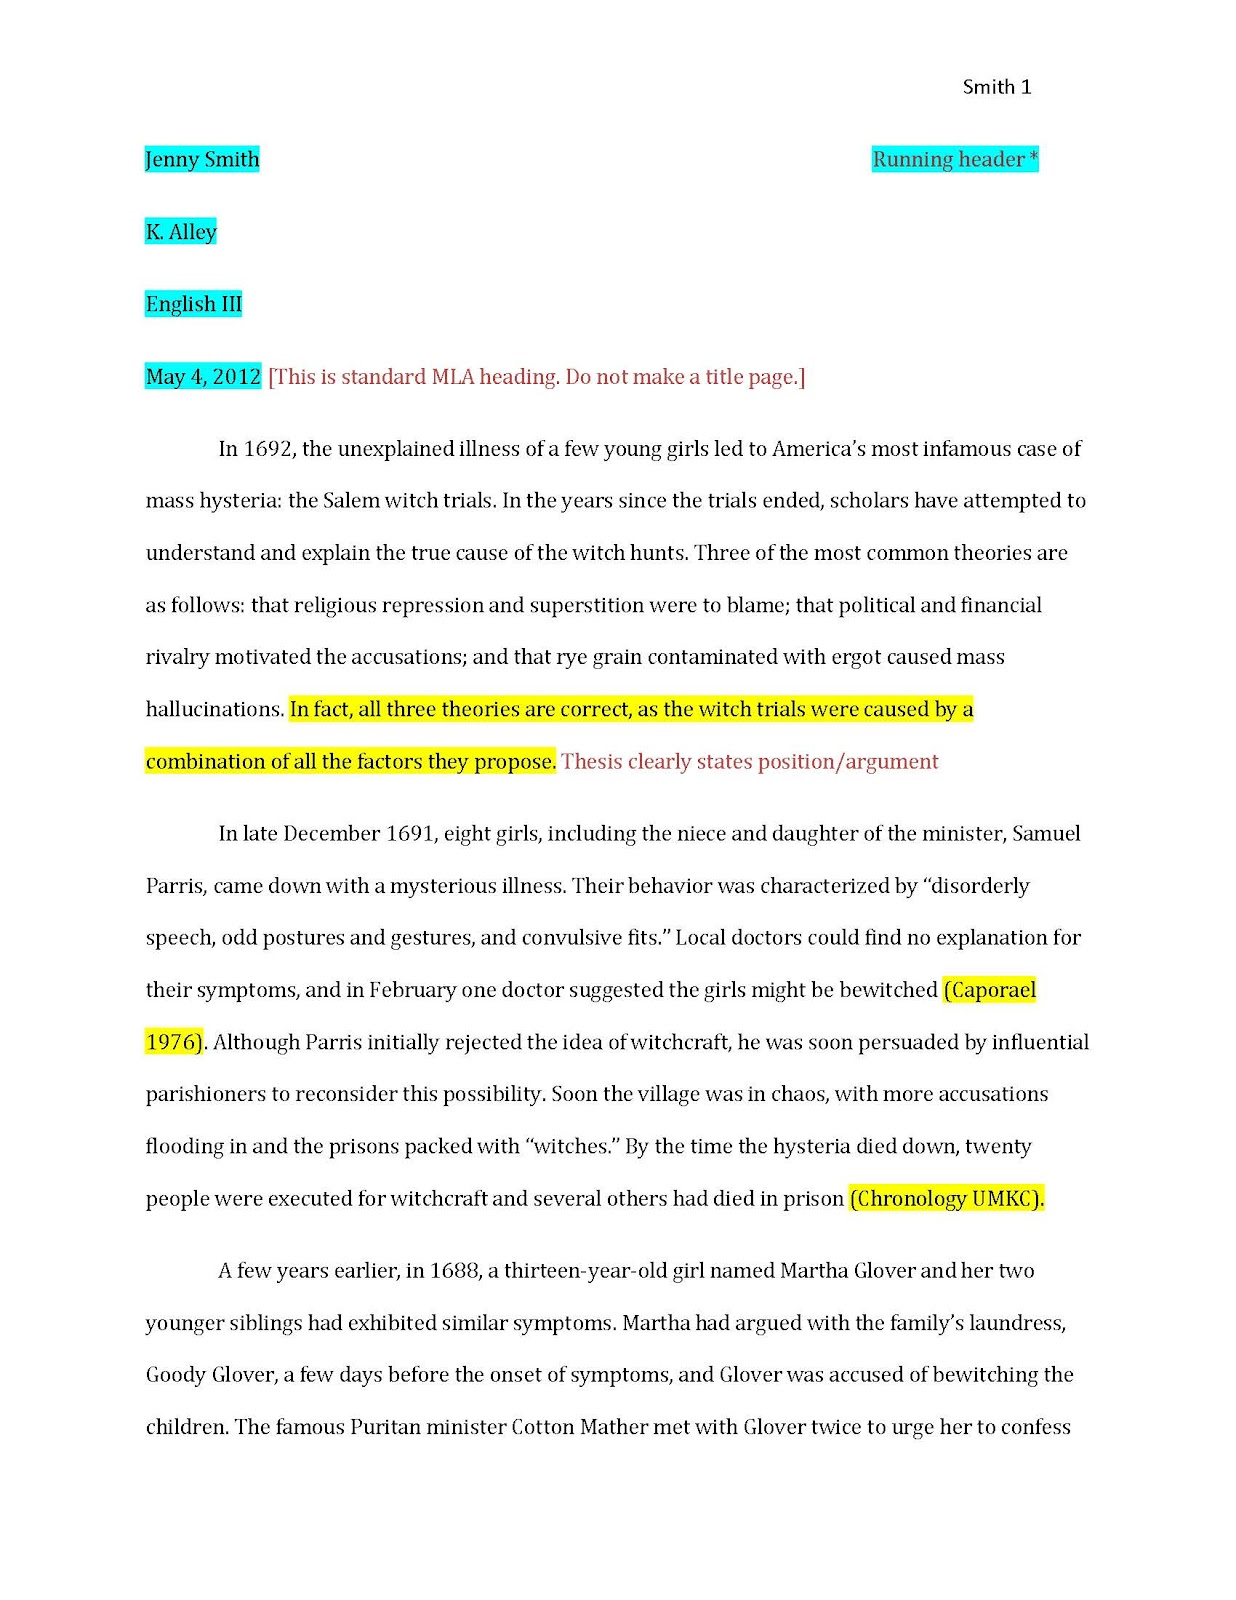 Mla Citation For An Essay Clever Essay Titles Quick Essay Topics